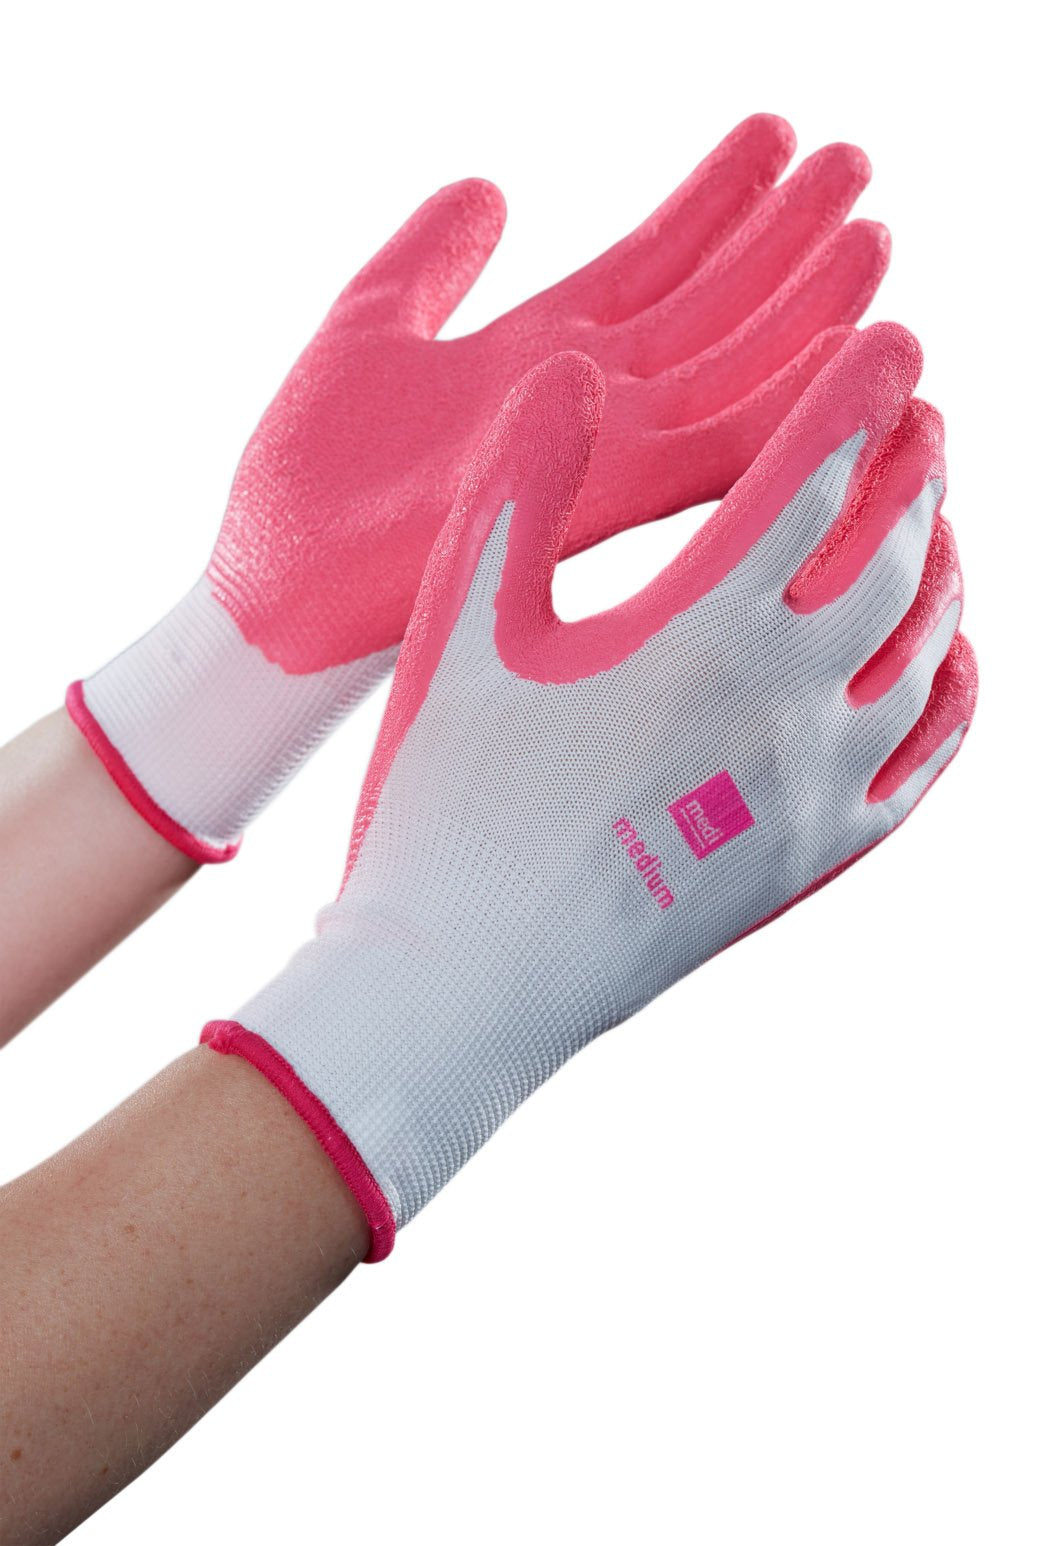 medi textile gloves 12 pack